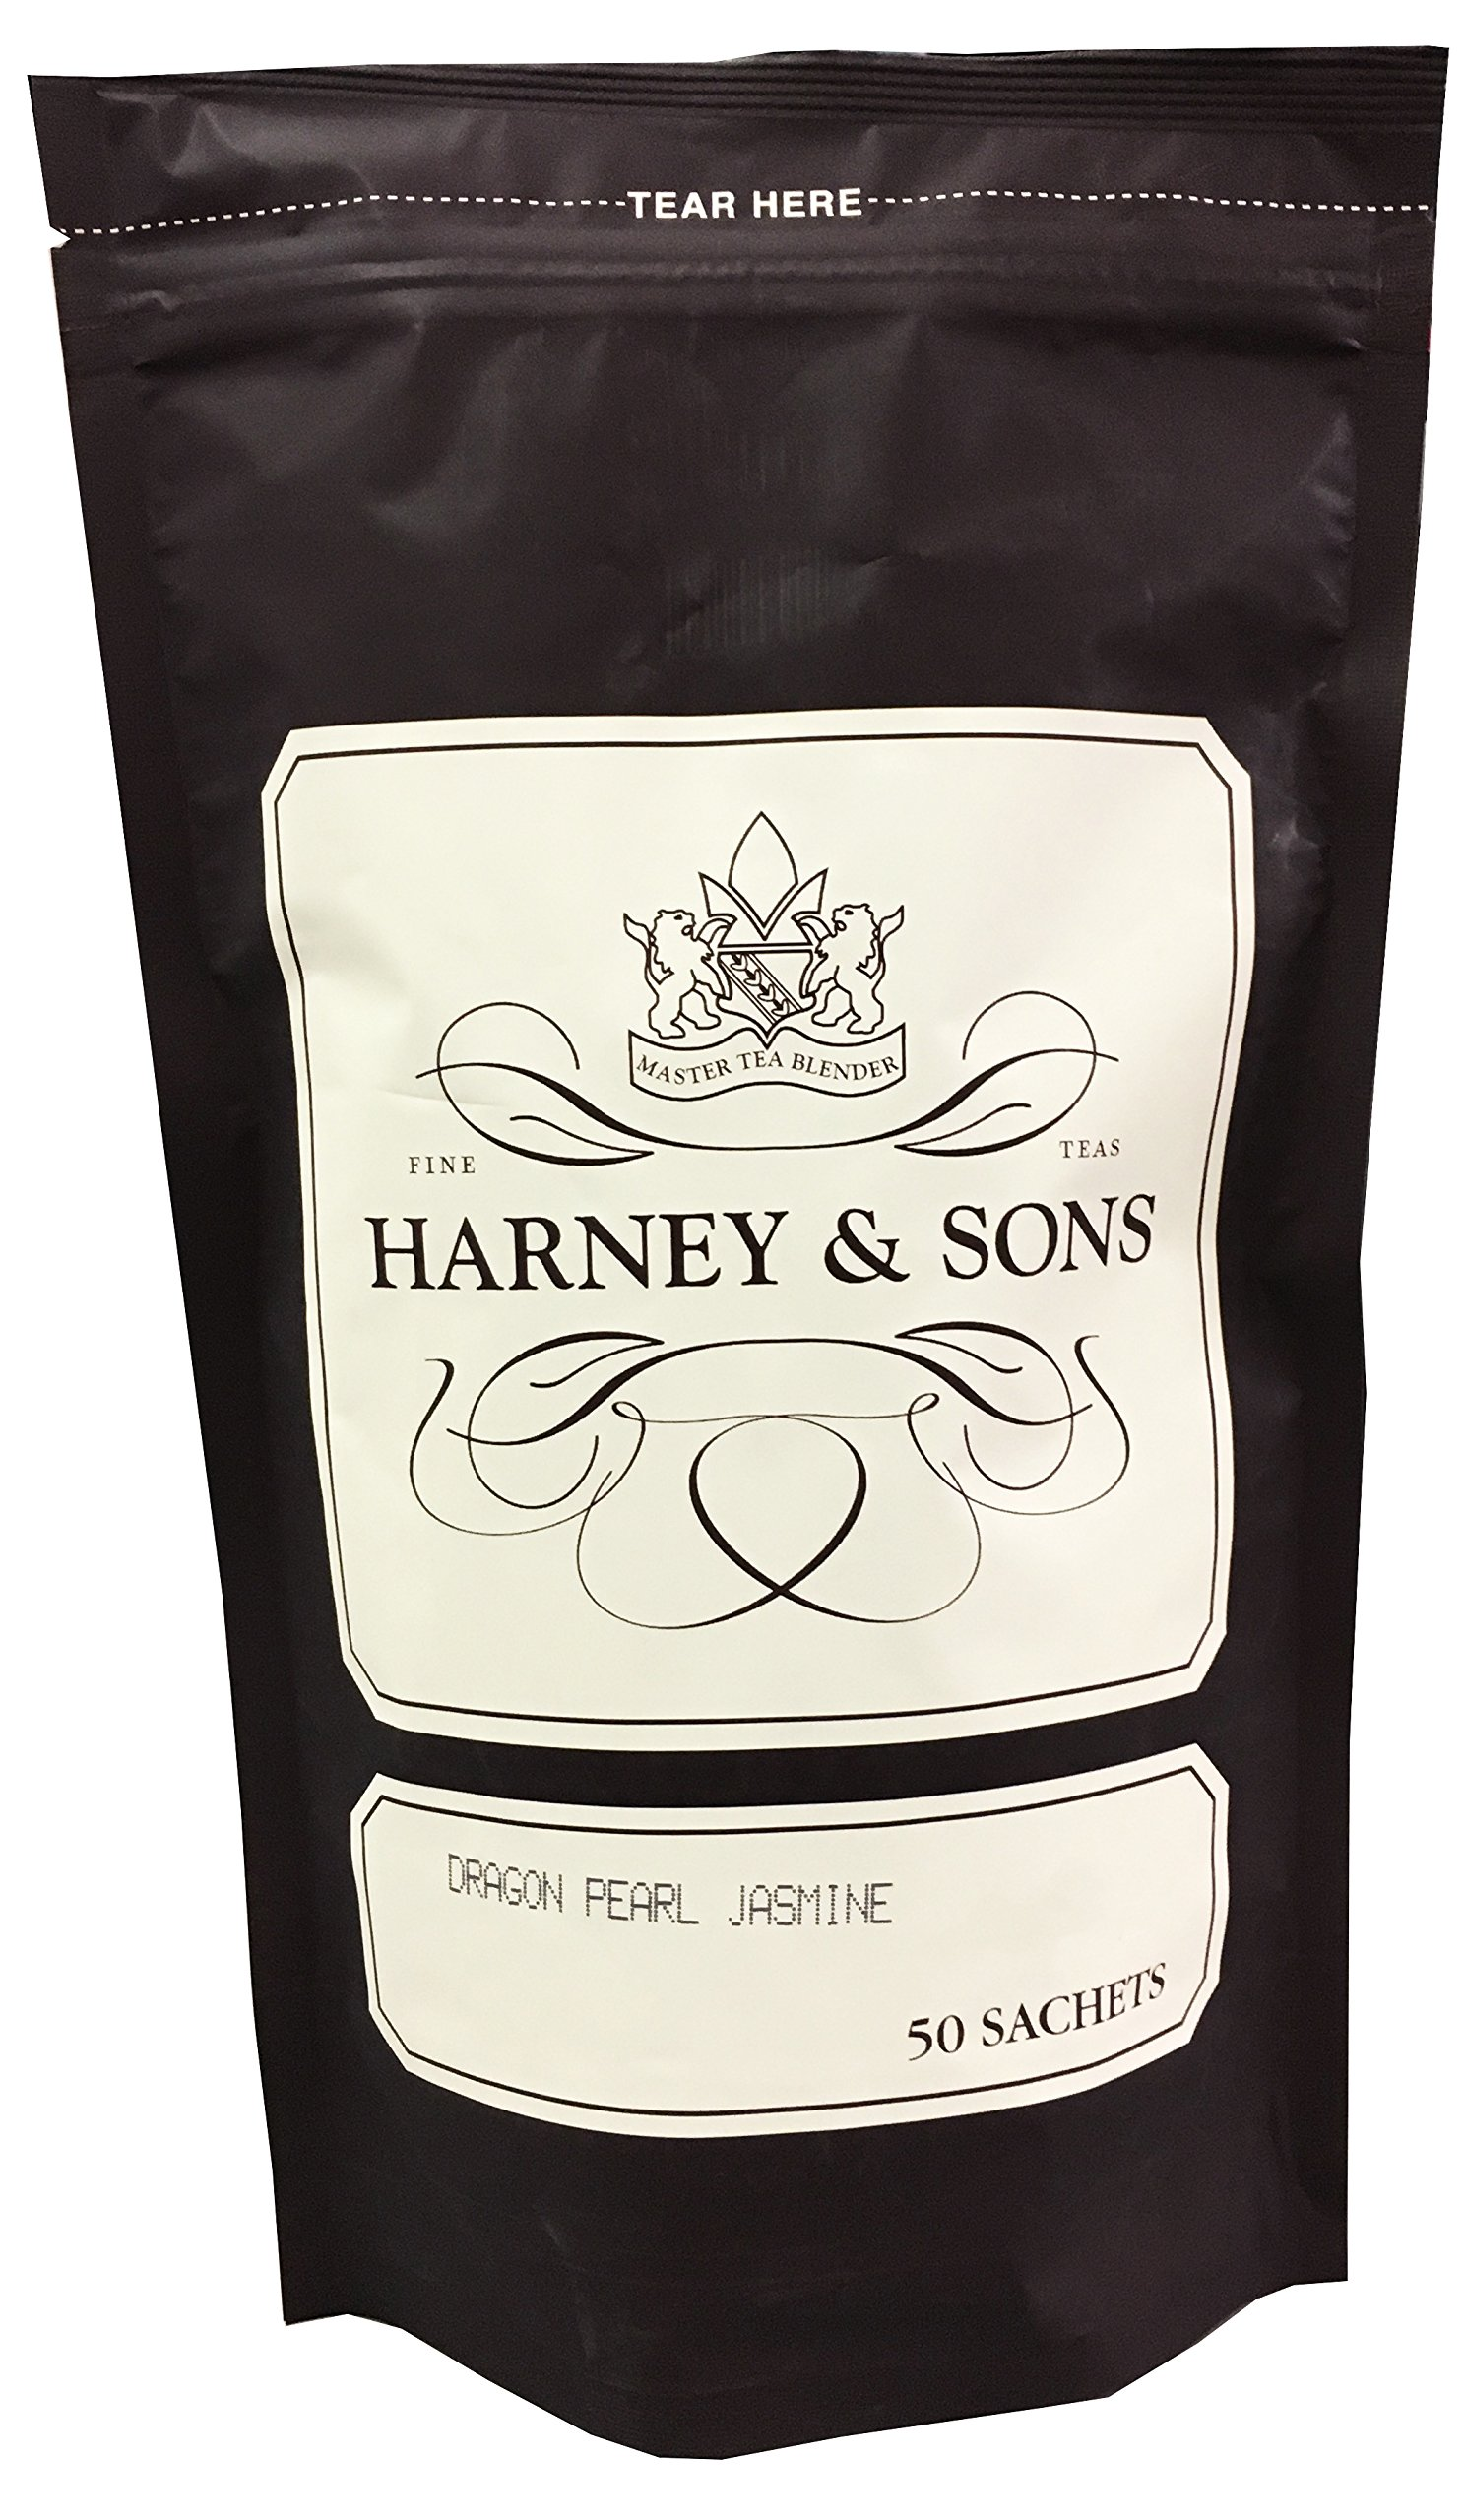 Harney & Sons Dragon Pearl Jasmine Tea - Floral and Sweet Aroma, High Quality, Great Present Idea - Bag of 50 Sachets